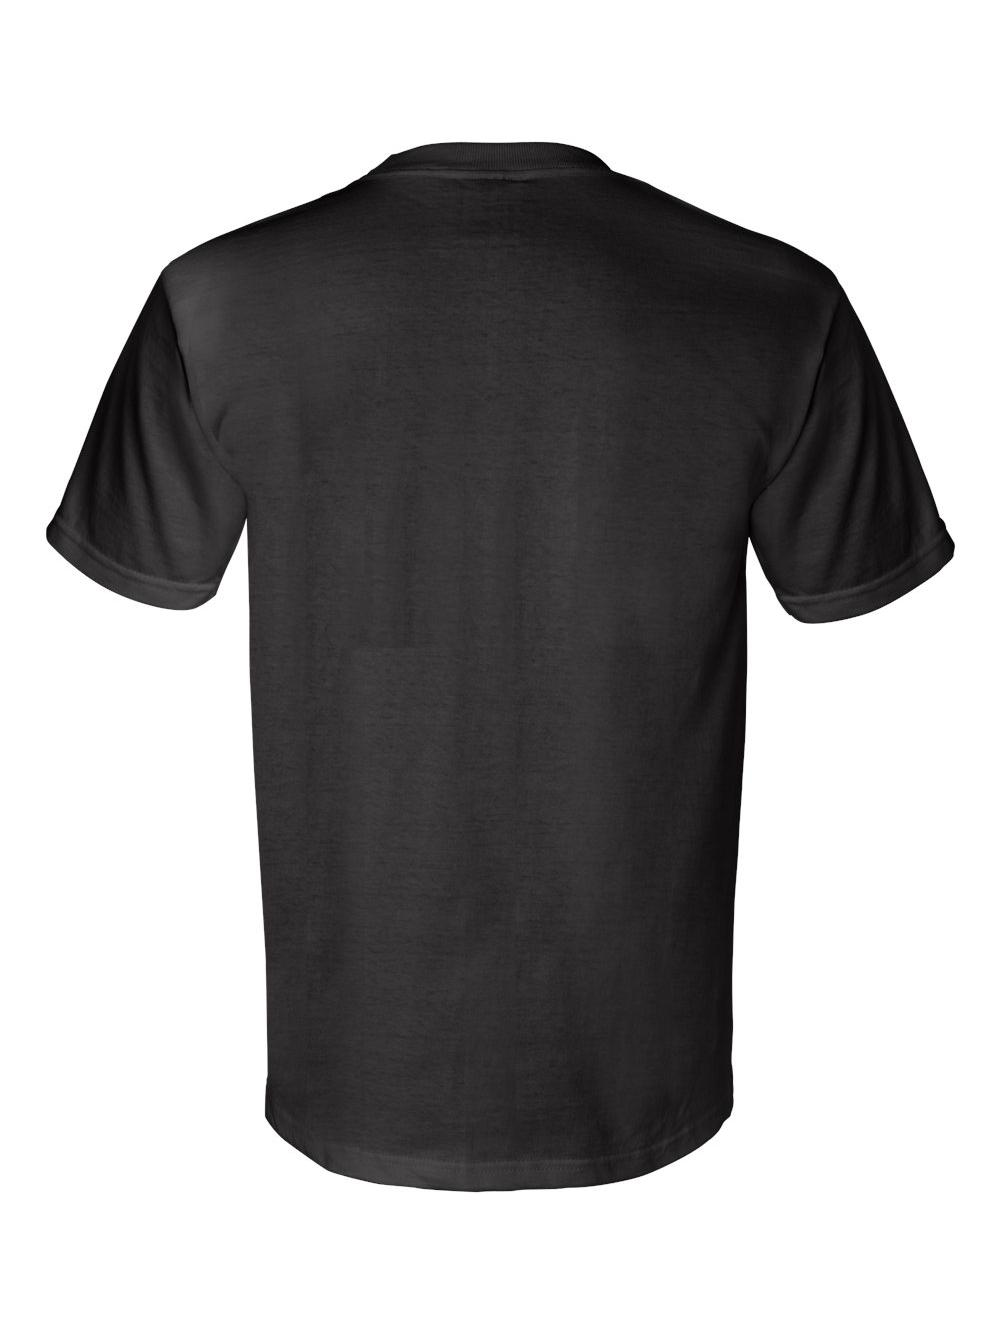 Bayside-Union-Made-Short-Sleeve-T-Shirt-with-a-Pocket-3015 thumbnail 7